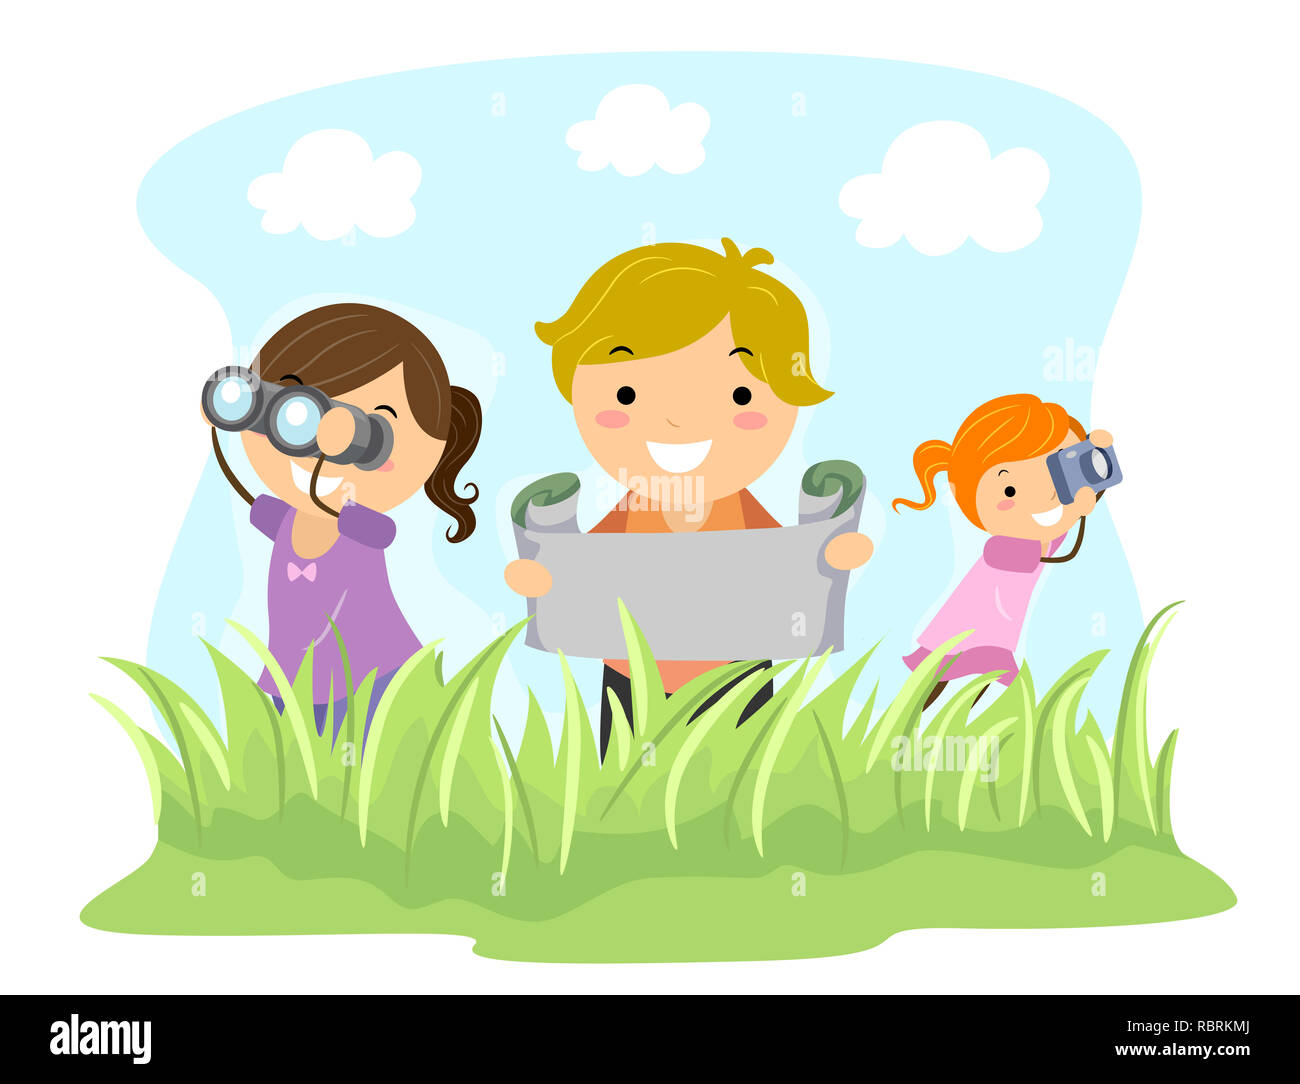 Illustration of Stickman Kids Holding Binoculars, Map and Camera Exploring Outdoors - Stock Image